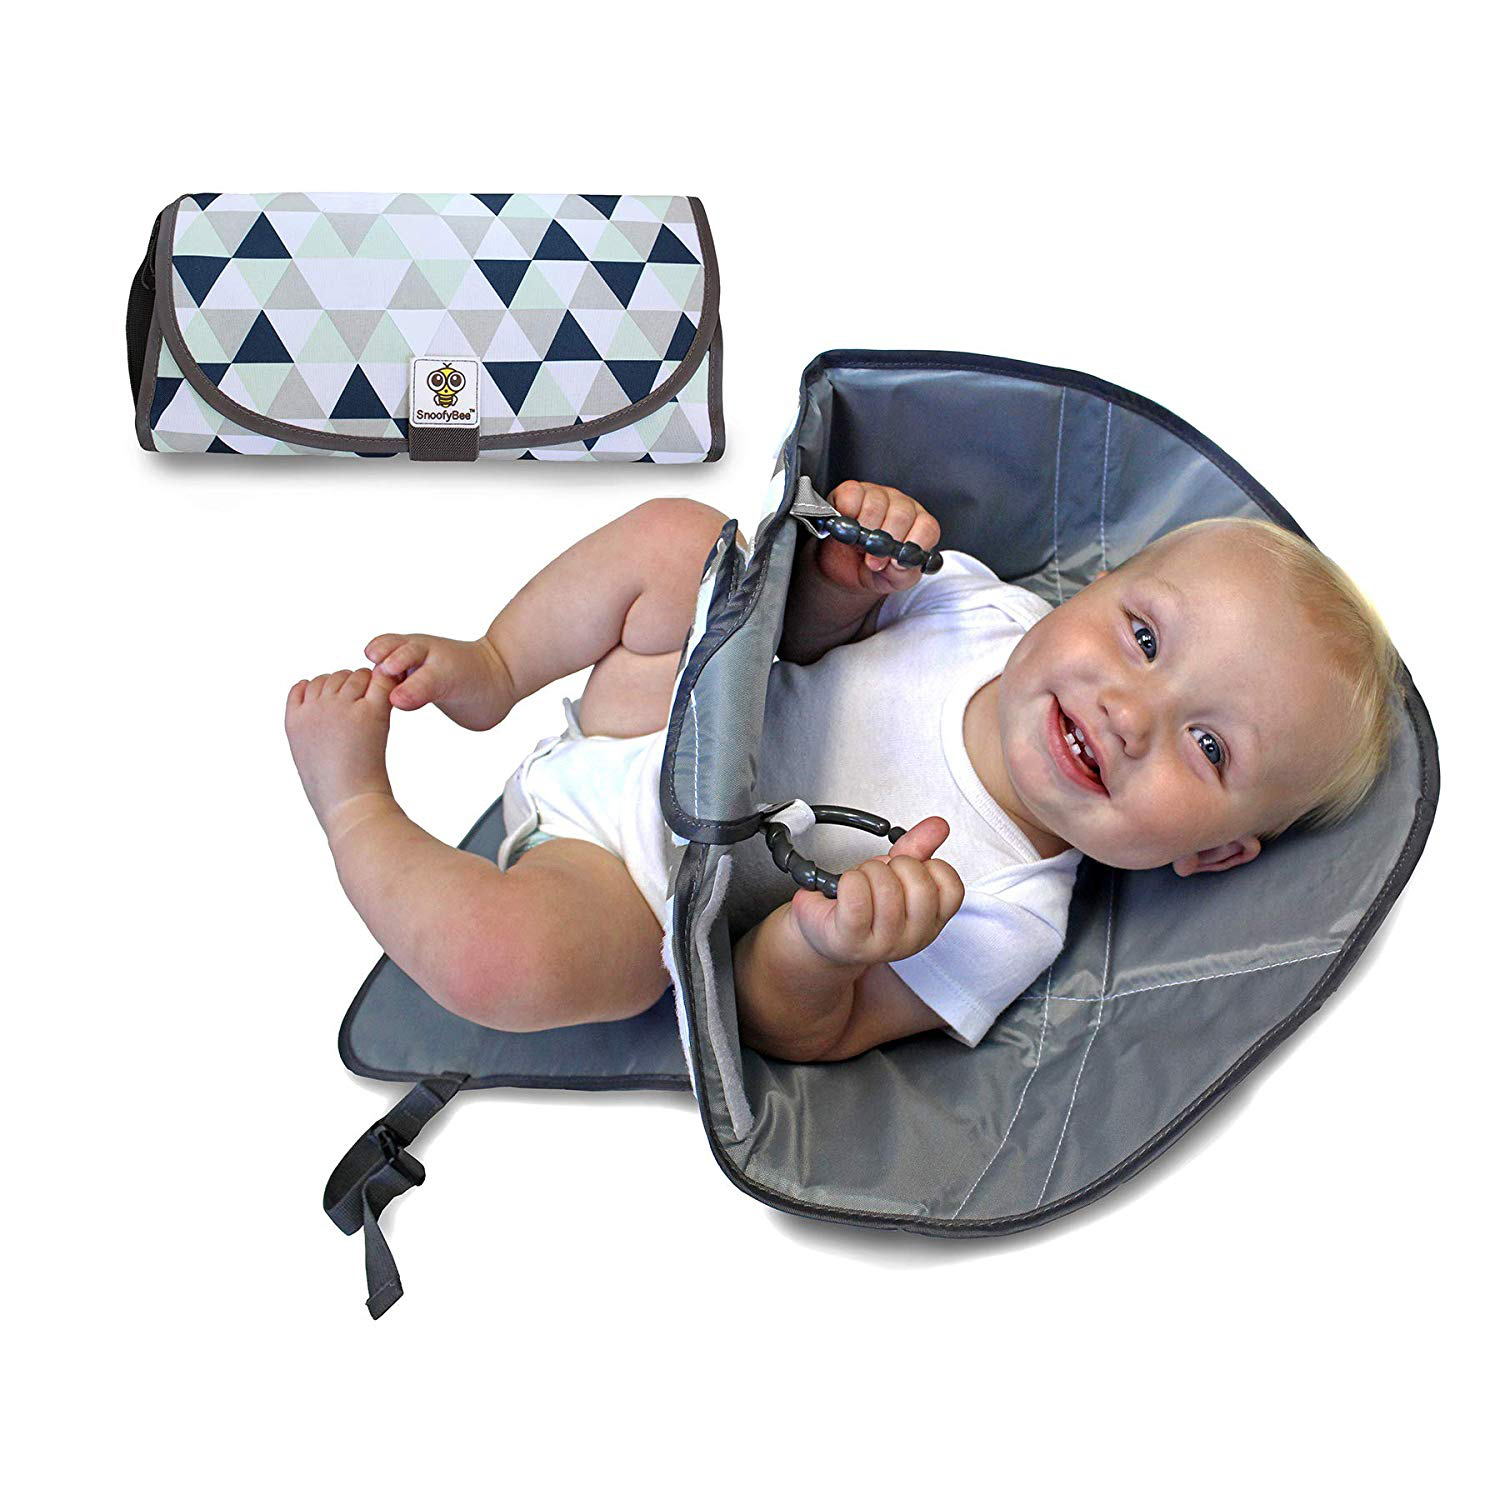 SnoofyBee Portable Clean Hands Changing Pad photo